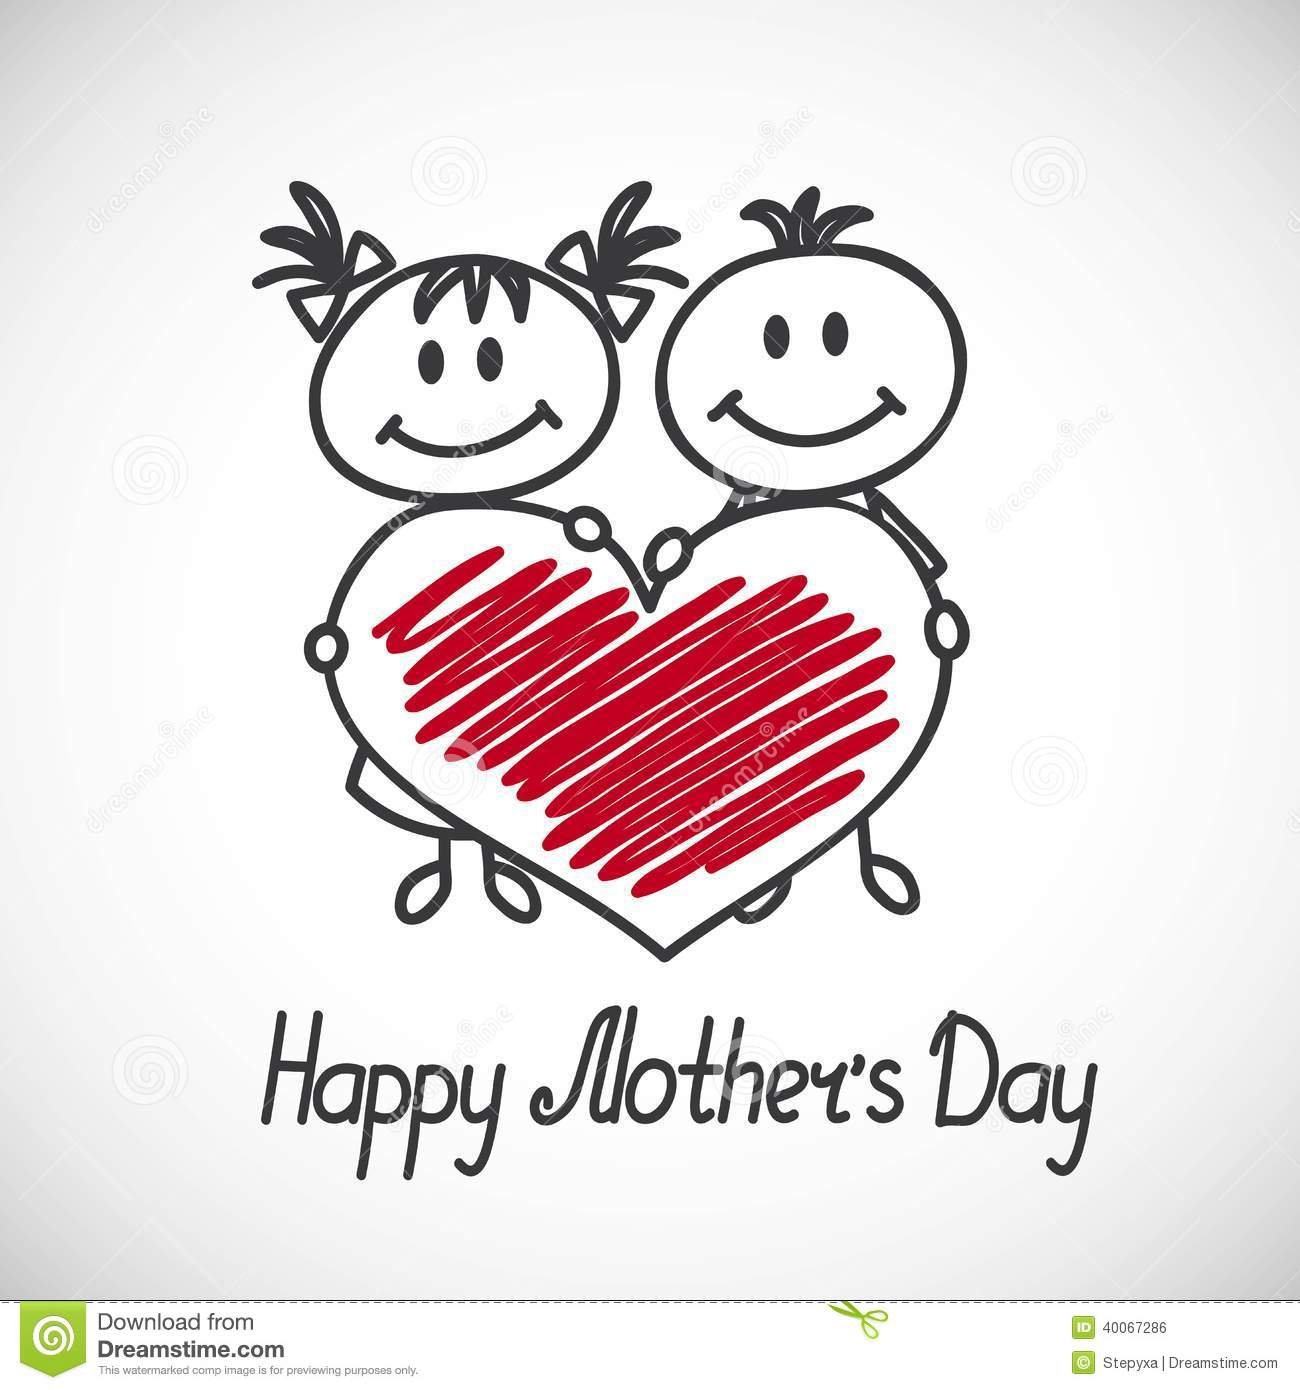 Boy and girl with big heart (cartoon doodle). Happy mothers day card.